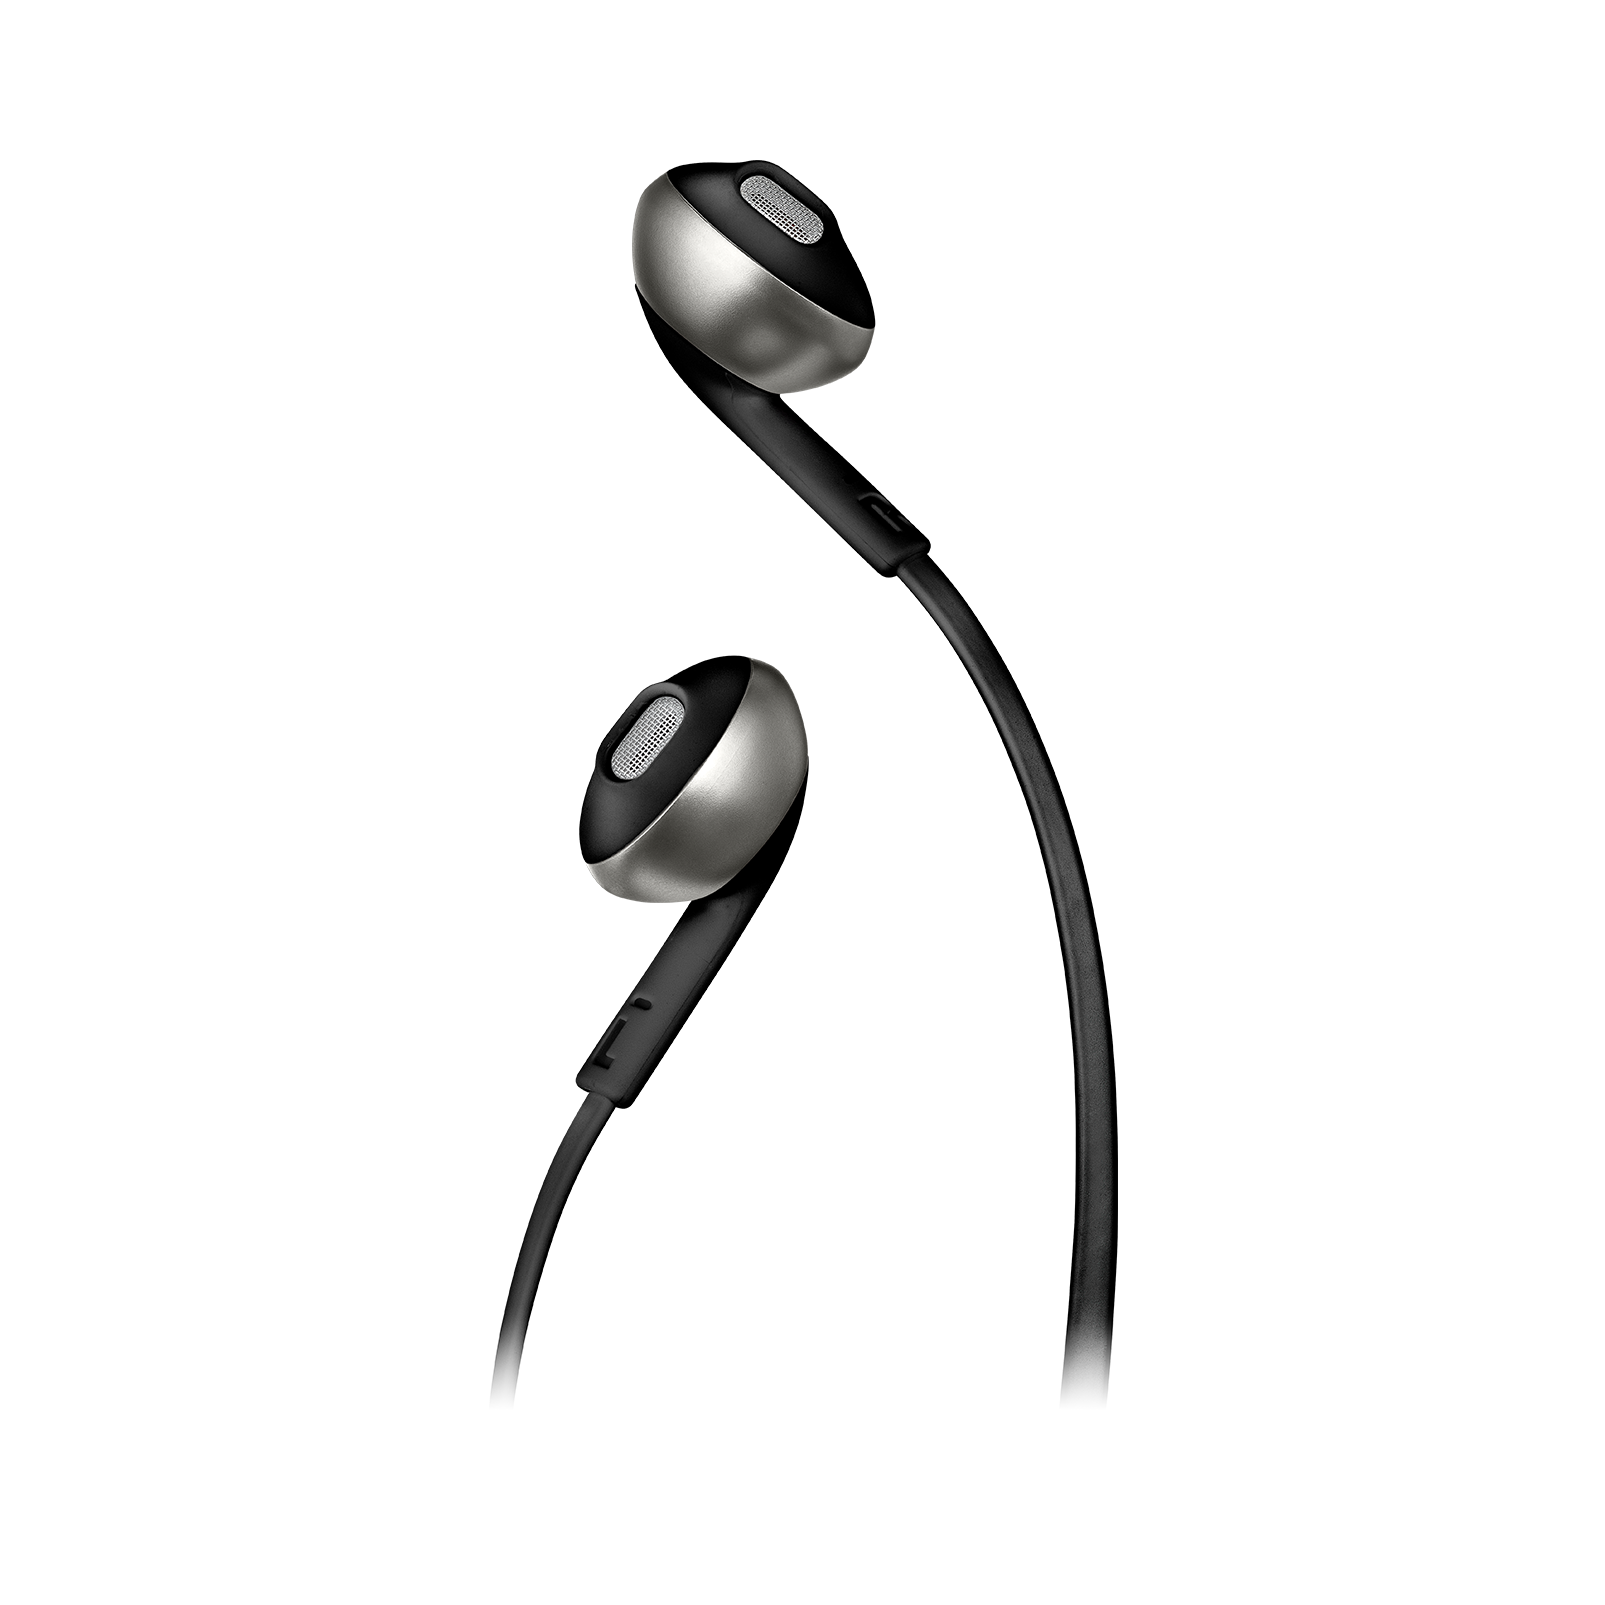 JBL TUNE 205BT - Black - Wireless Earbud headphones - Detailshot 1